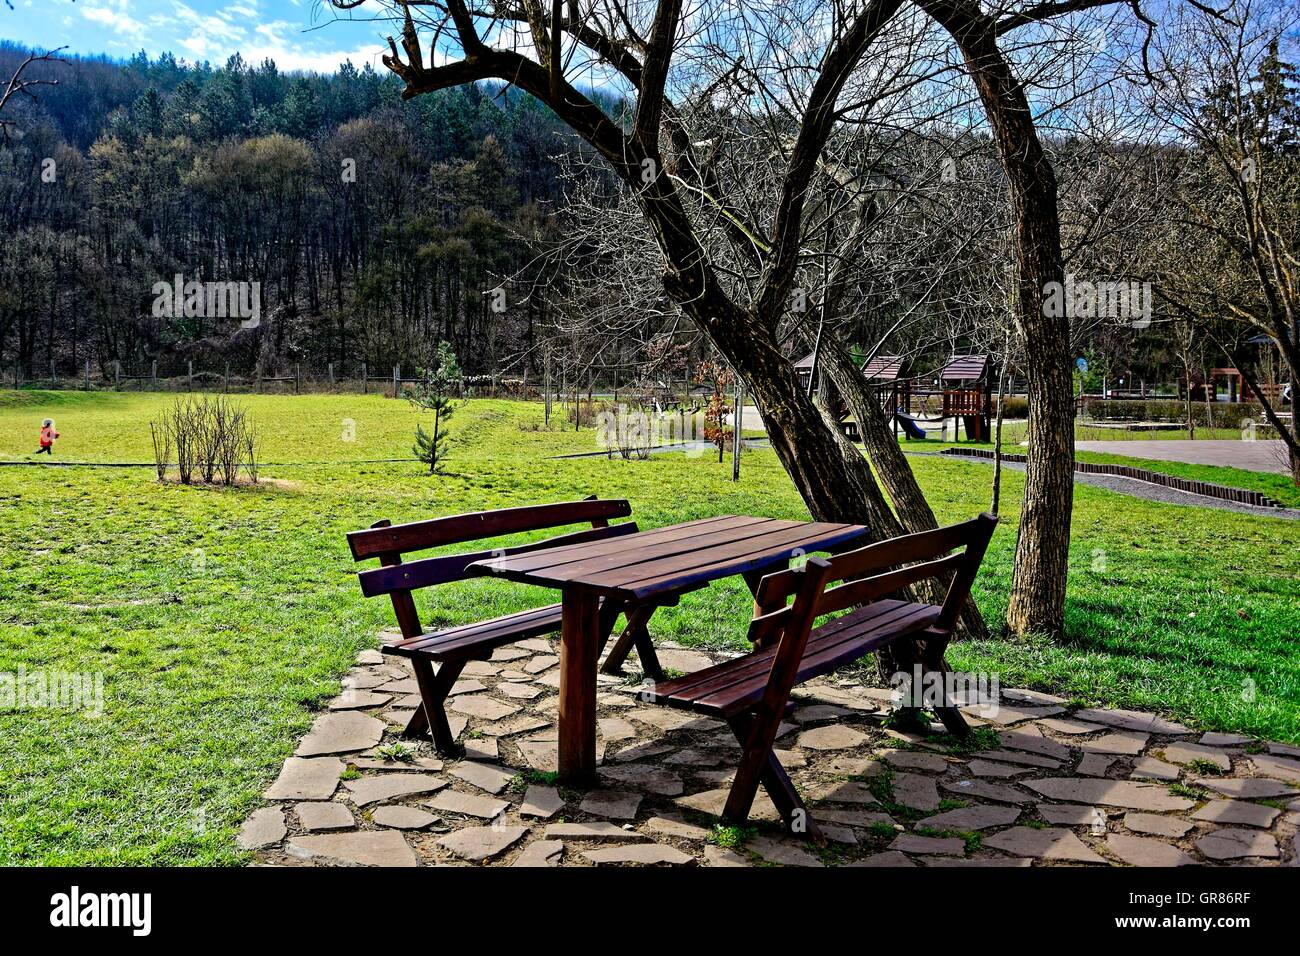 Hard Anchored Wooden Benches And Wooden Table Under A Tree Stock Photo